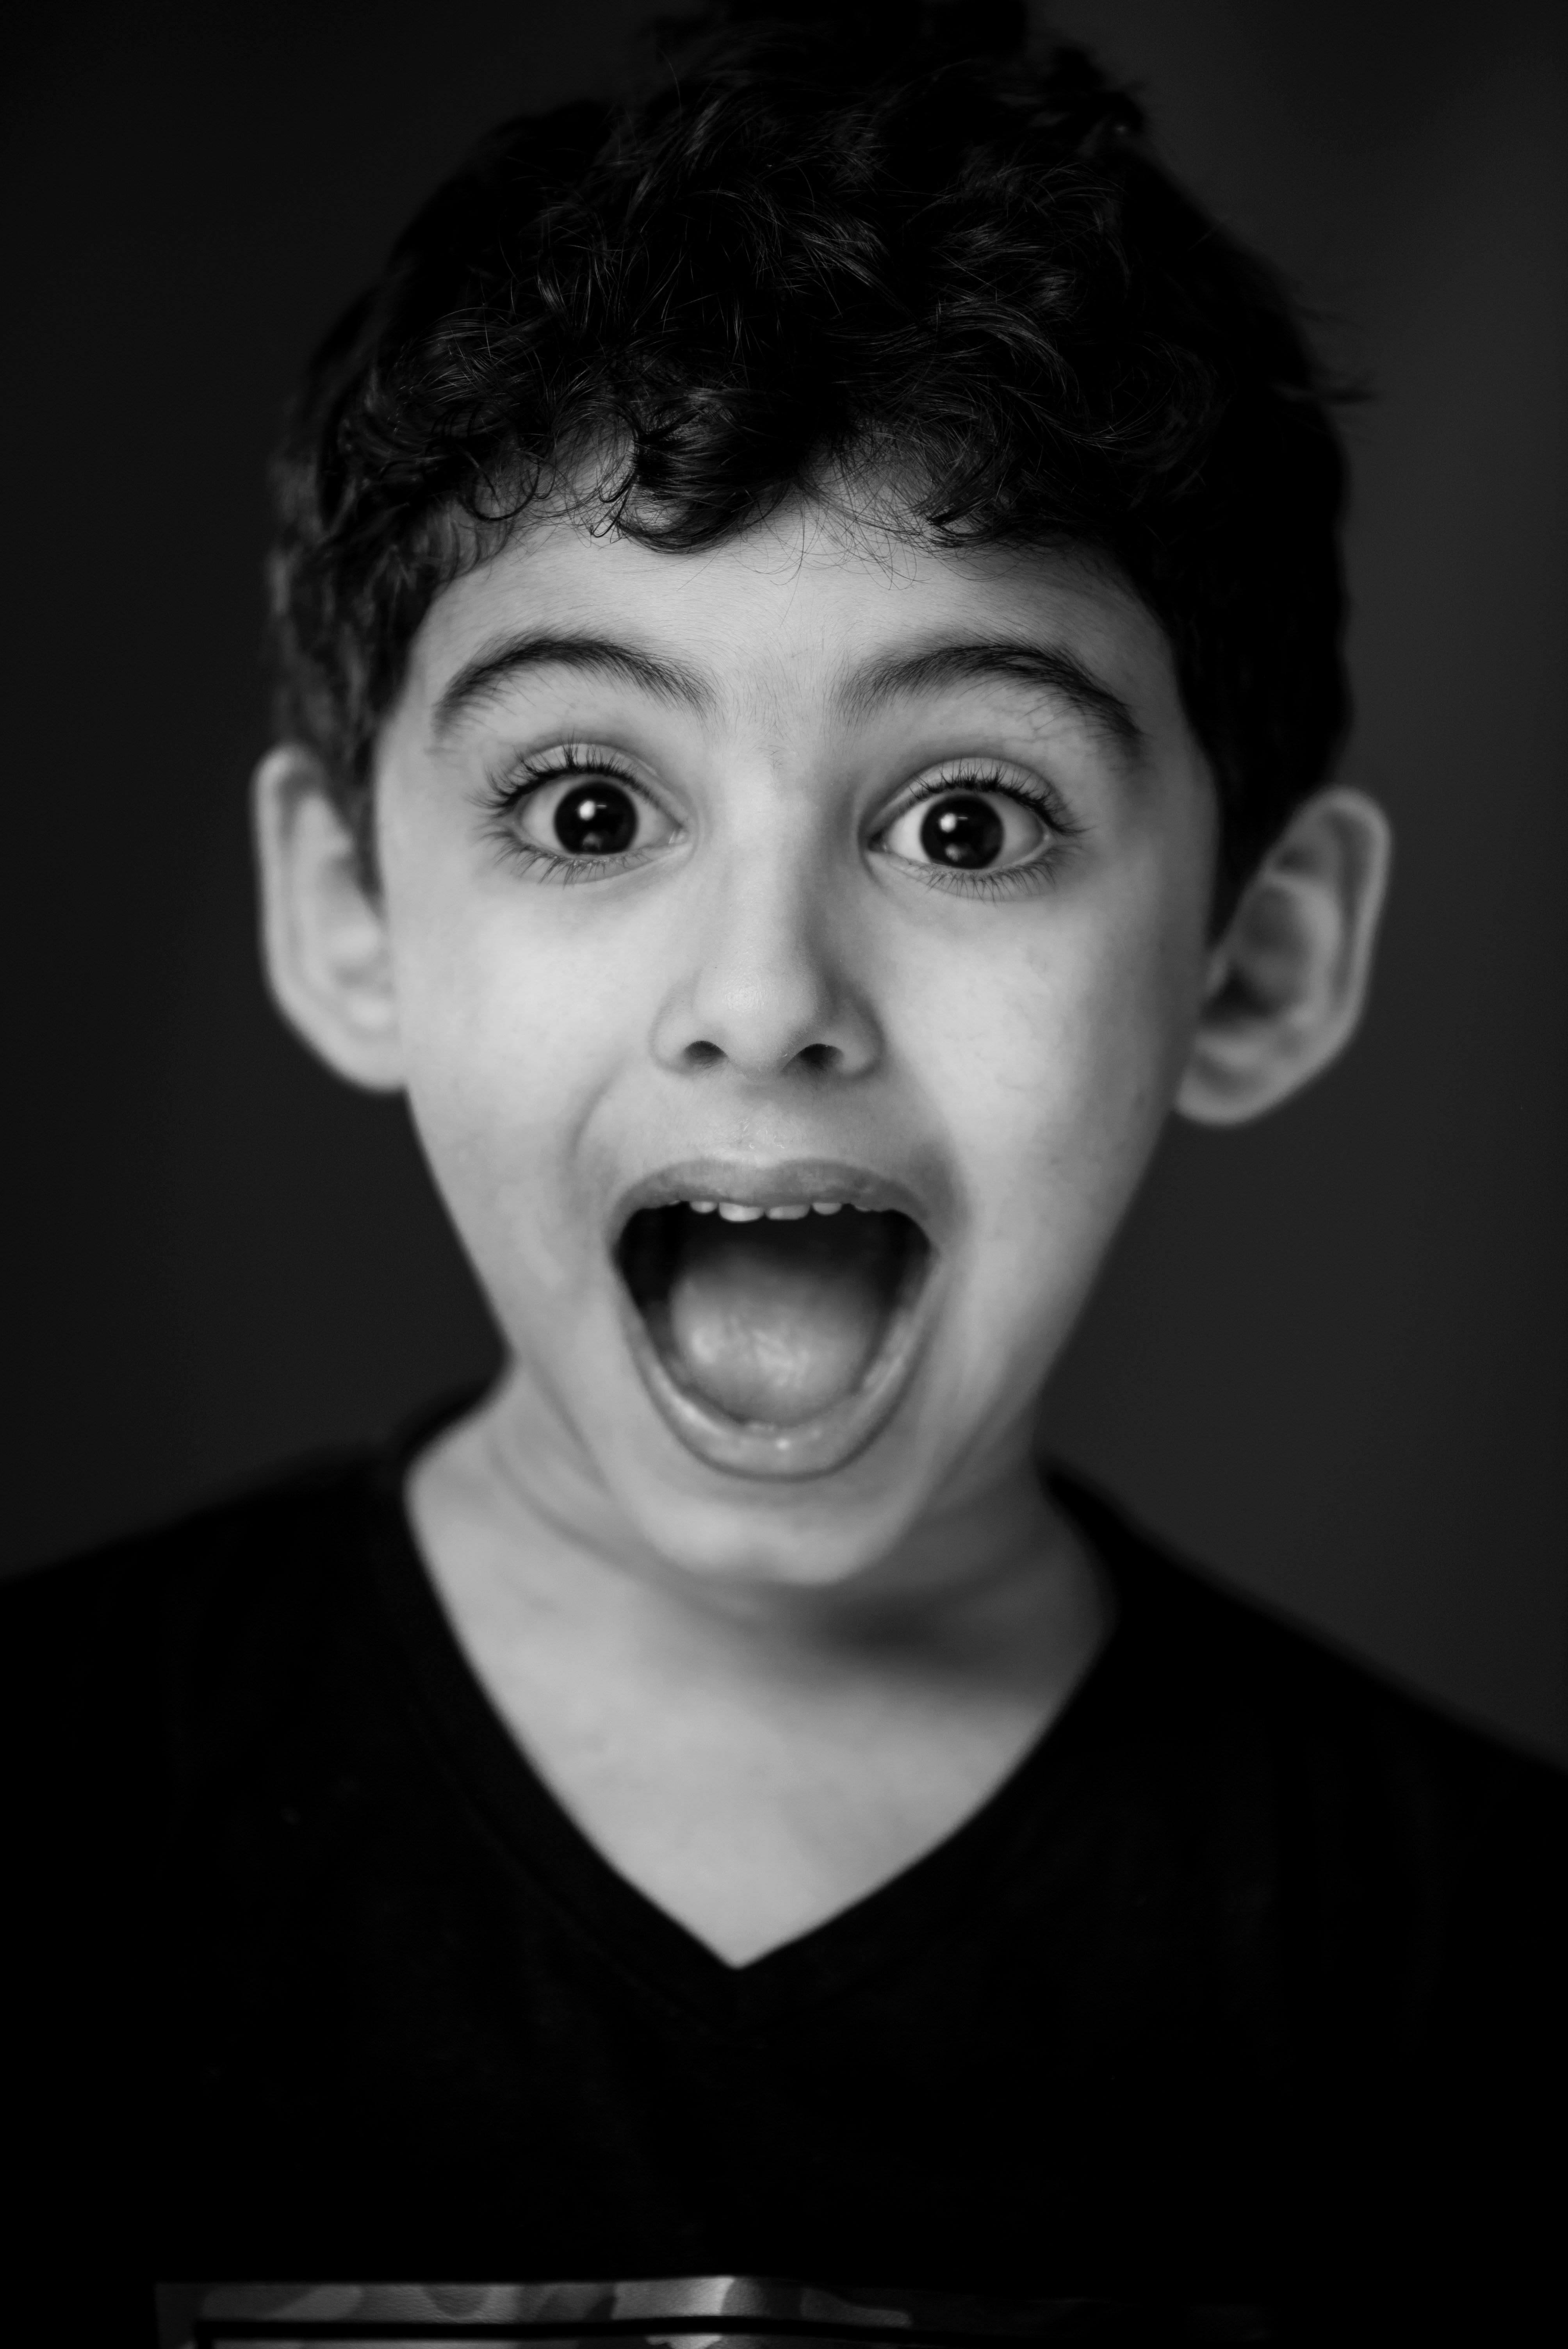 A boy with a shocked look. | Source: Pexels